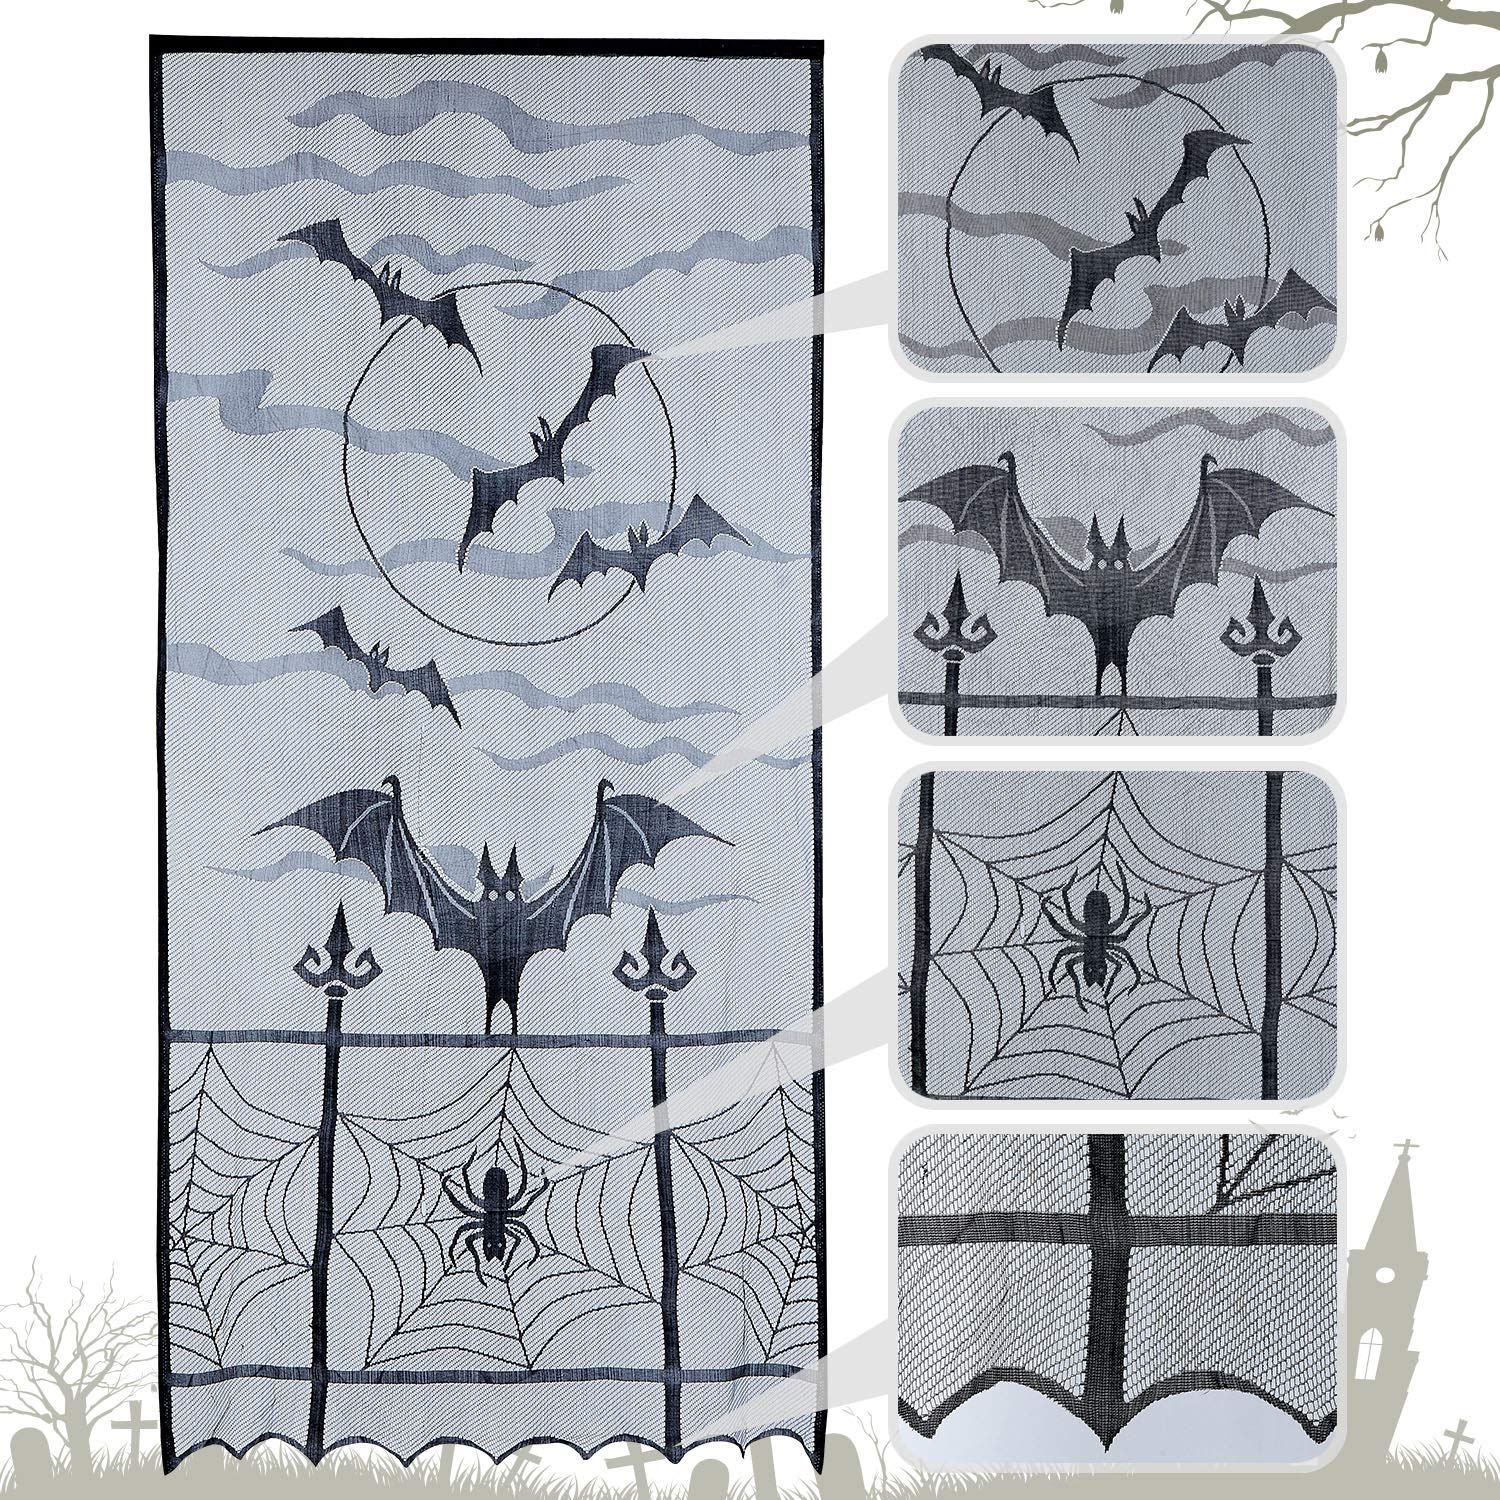 N/&T NIETING 1pcs Black Bats Halloween Lace Window Curtain,Spider Web Bats Door Curtain Panel Decor for Spooky Halloween Holiday Party Decoration,40x84 inch